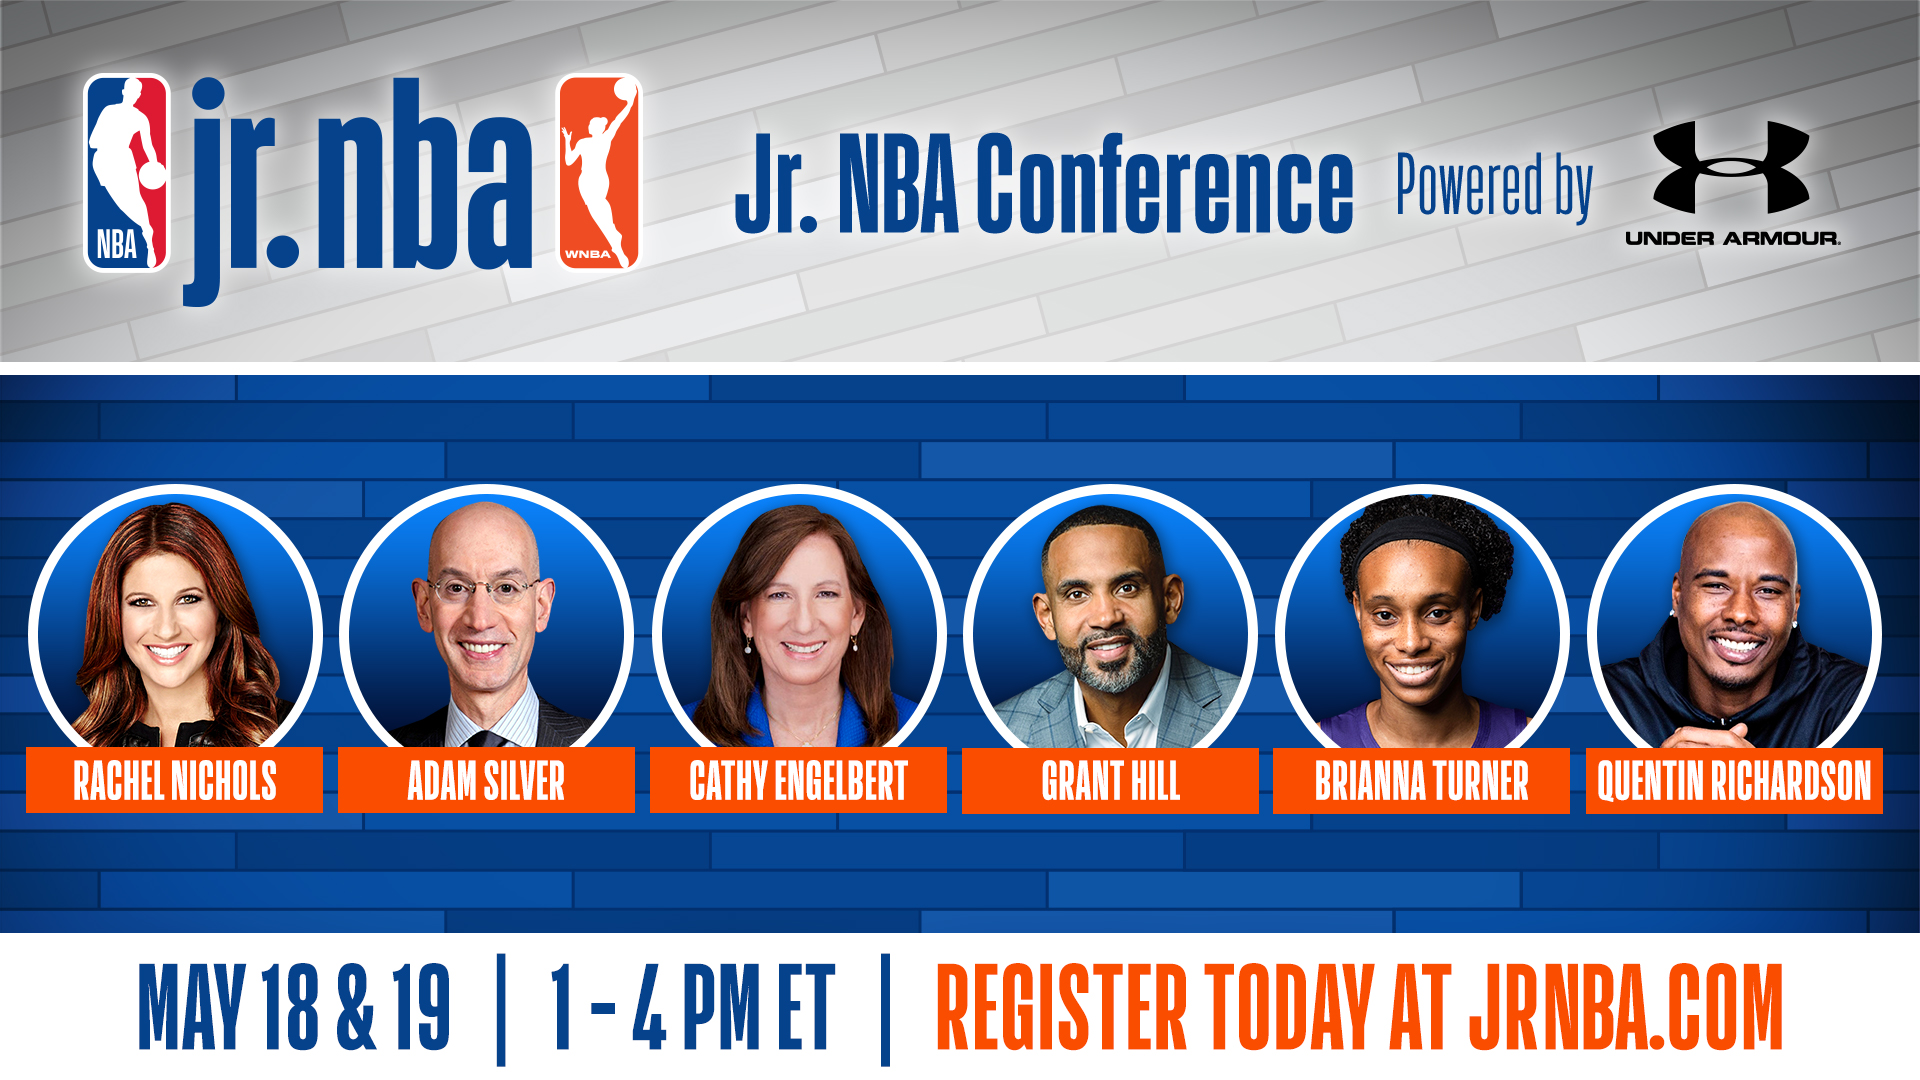 2021 Jr. NBA Conference powered by Under Armour Delivers a Dynamic Lineup of Speakers and Sessions Galvanizing the Youth Basketball Community